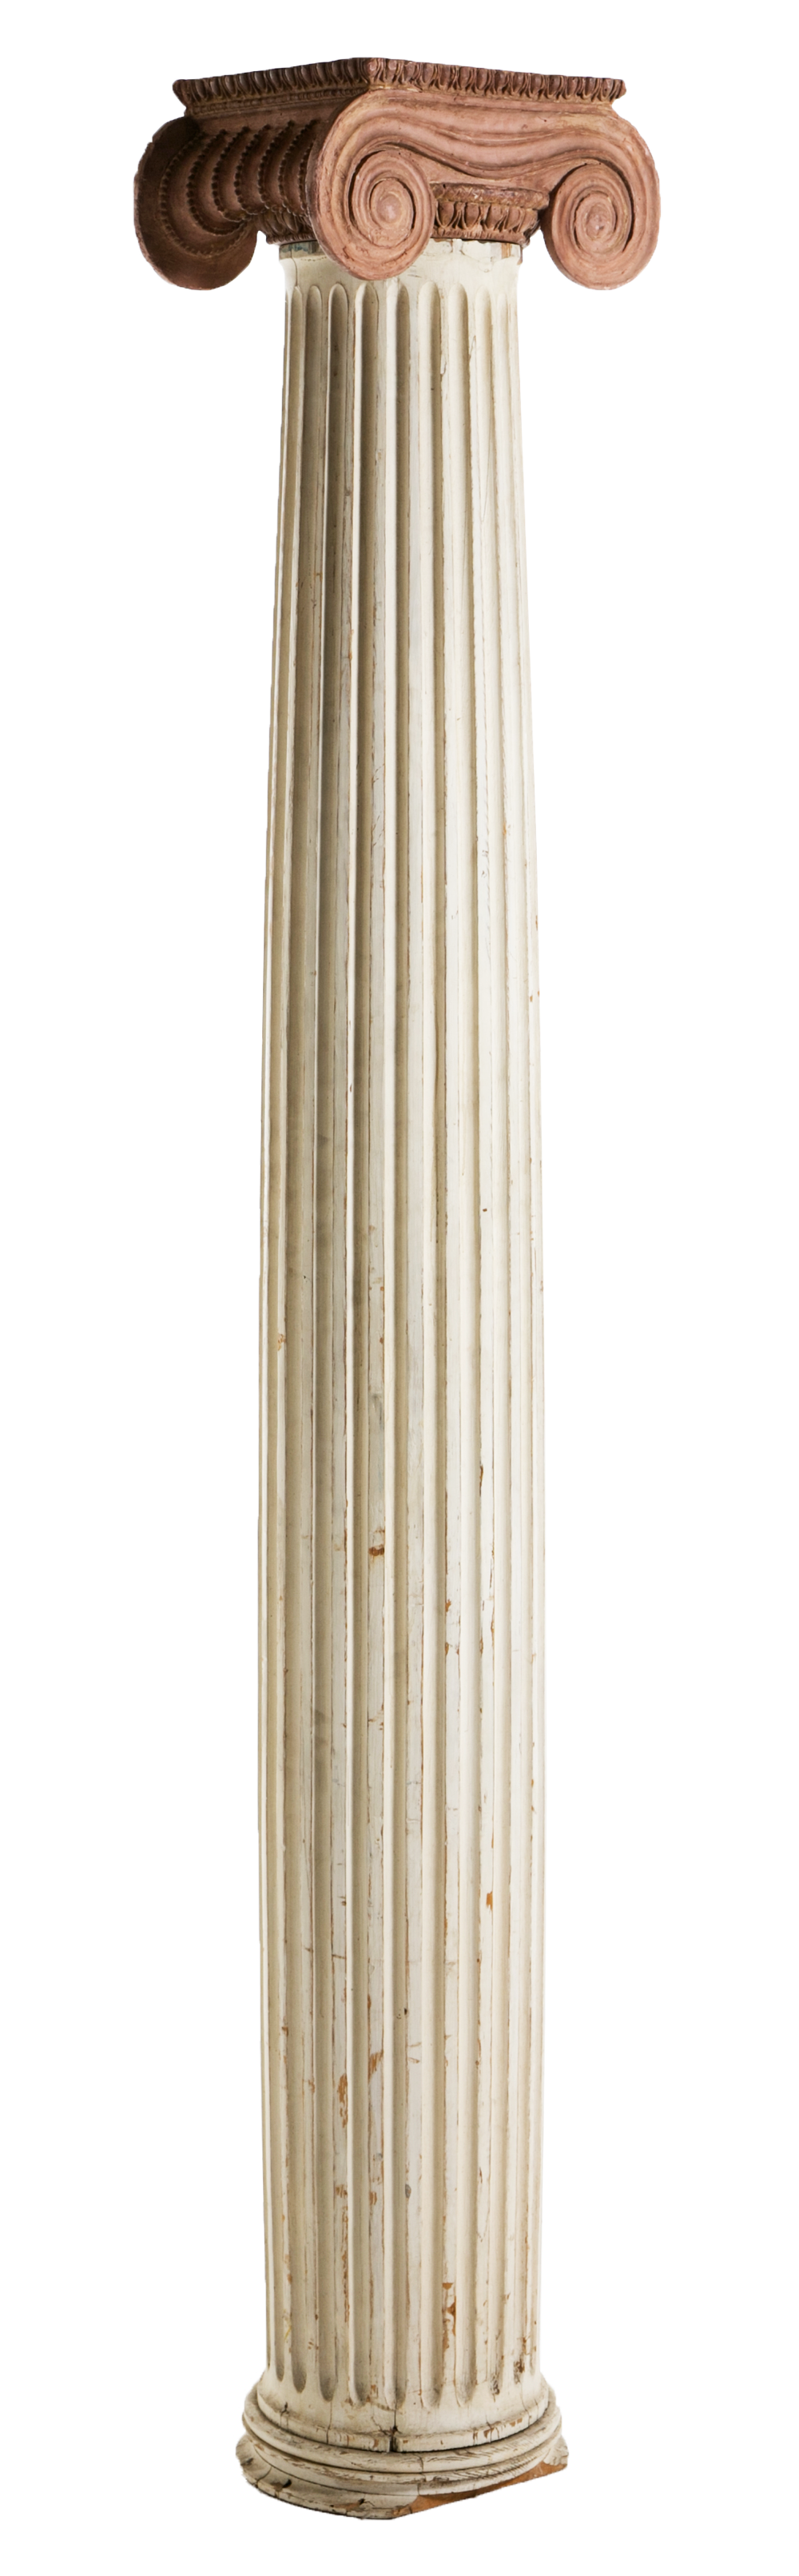 Wood column png. Images free download